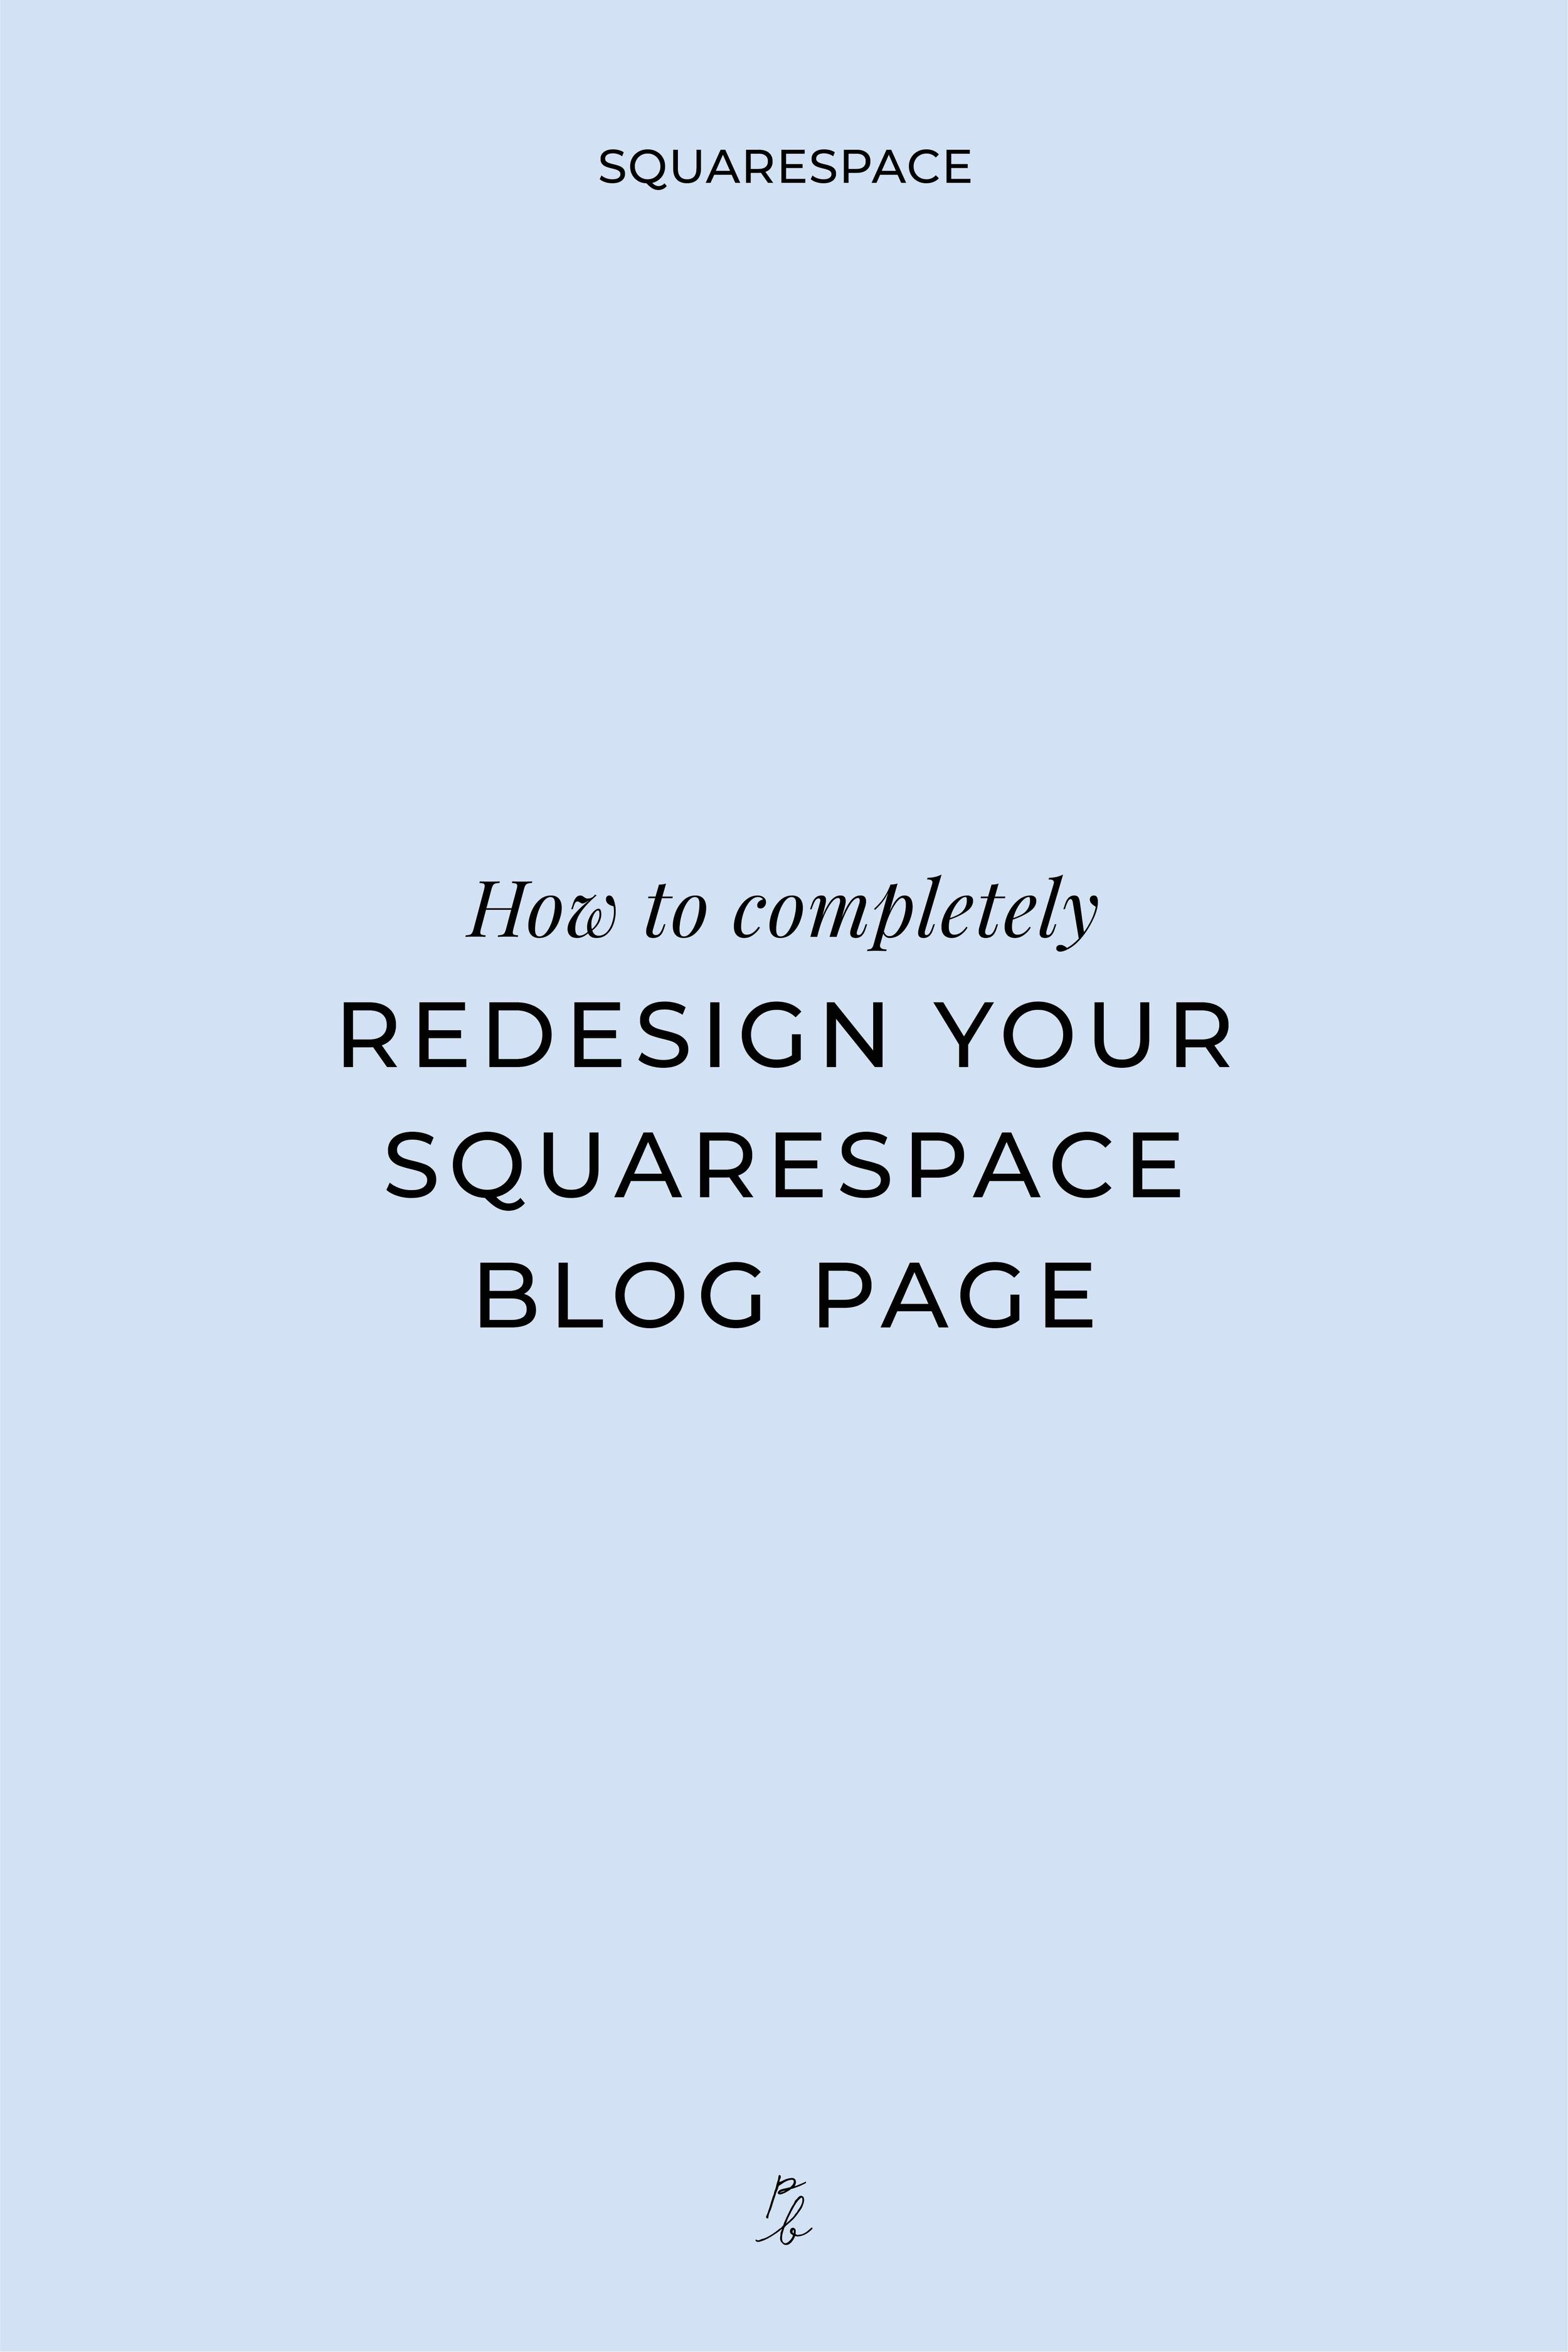 How to completely redesign your Squarespace blog page-03.jpeg